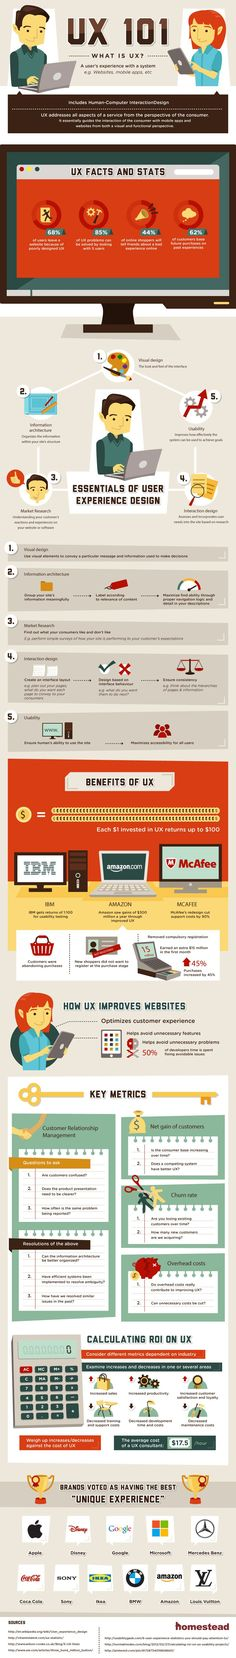 User experience (UX) is the buzzword for most companies with any sort of online presence these days. This infographic, created by the people at Homestead, outlines the importance of good UX design and what it can mean for your business.